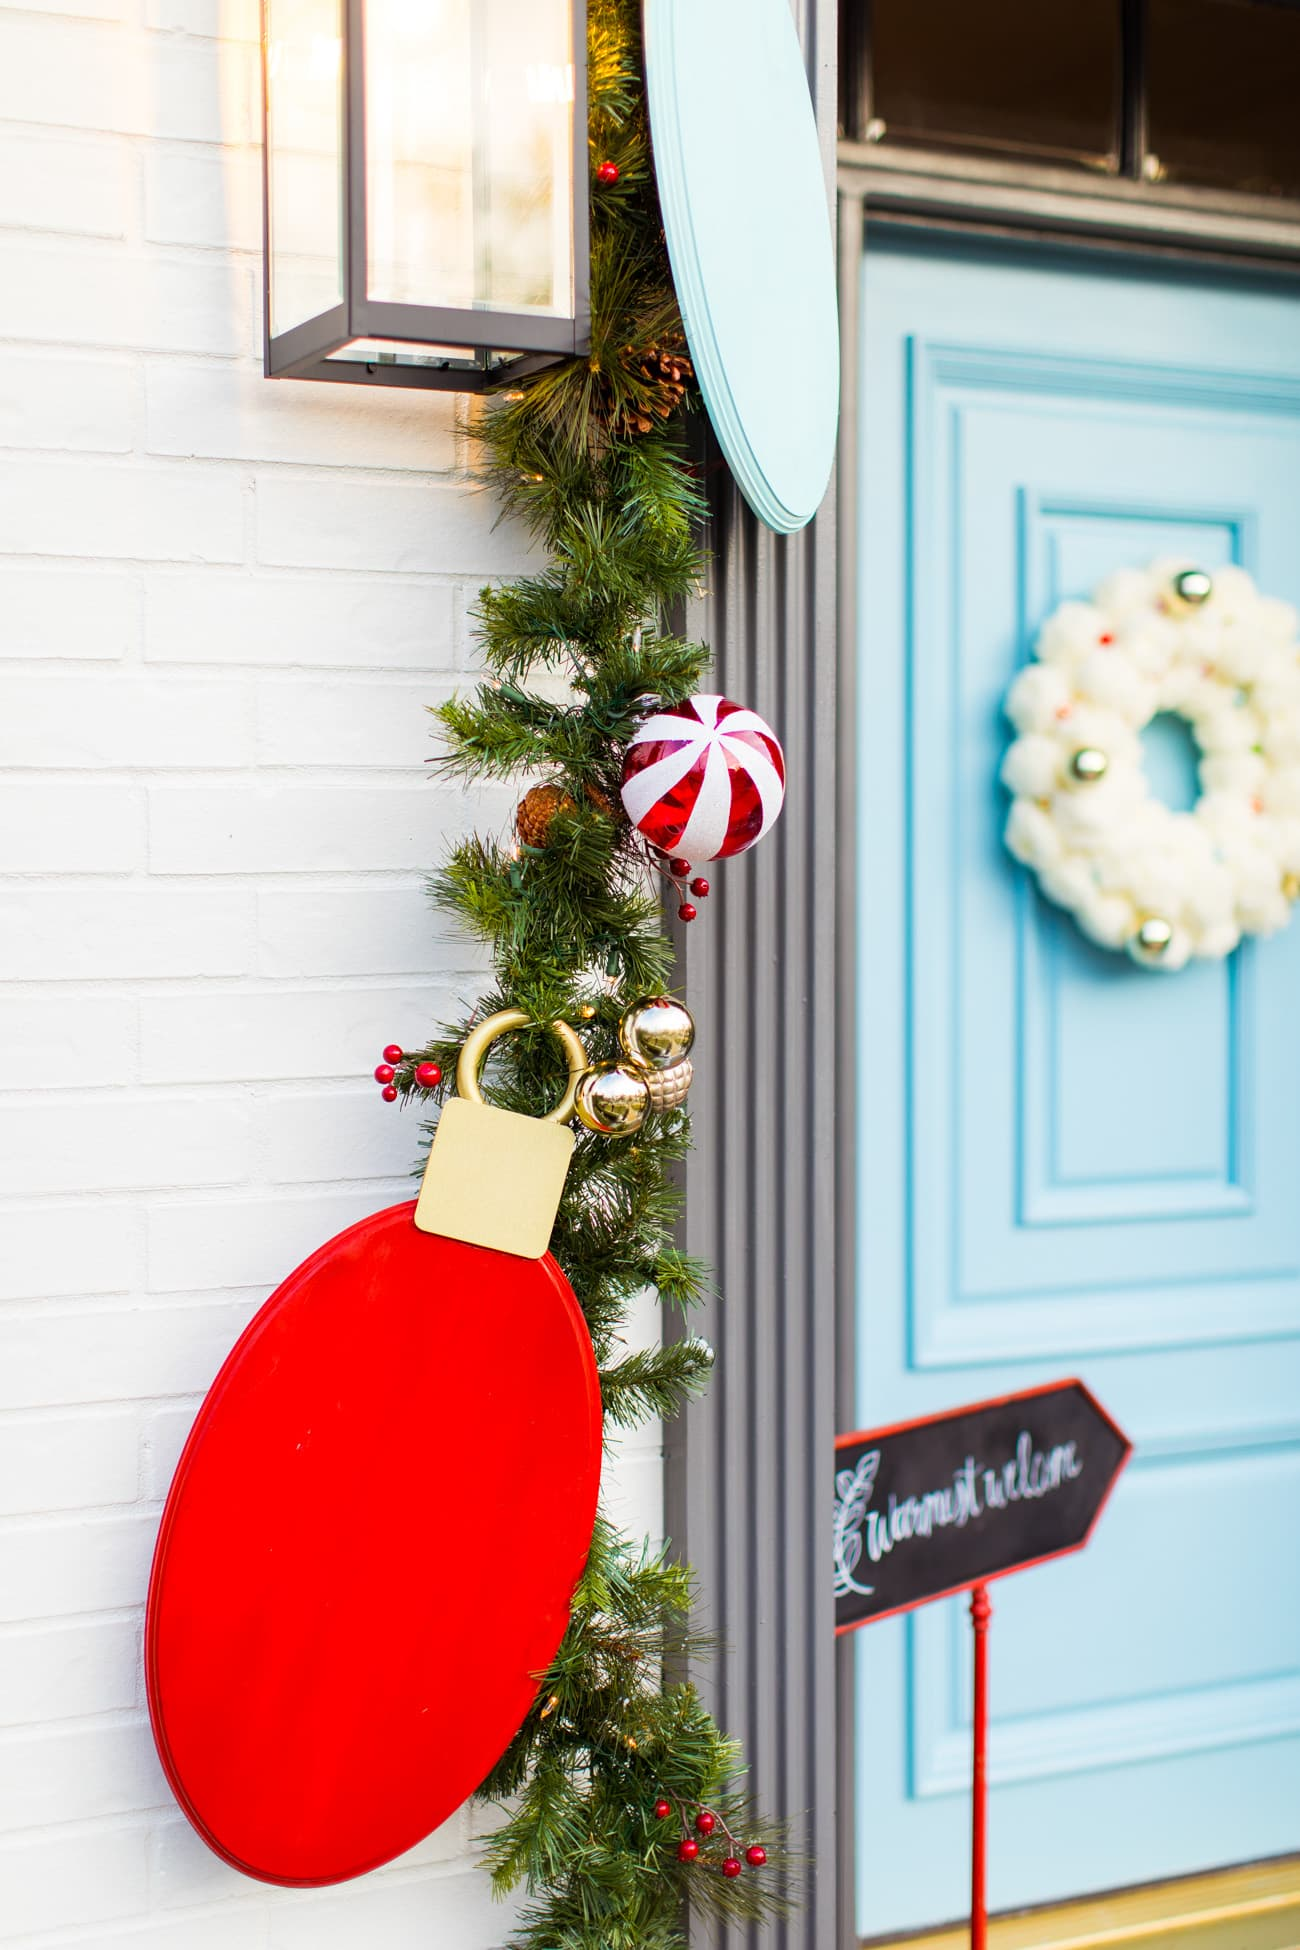 jumbo lightbulbs christmas lights! Jumbo Lights Outdoor DIY Christmas Decorations! by top Houston lifestyle blogger Ashley Rose of Sugar & Cloth #DIY #howto #christmas #holidays #decorations #decor #home #frontdoor #entrance